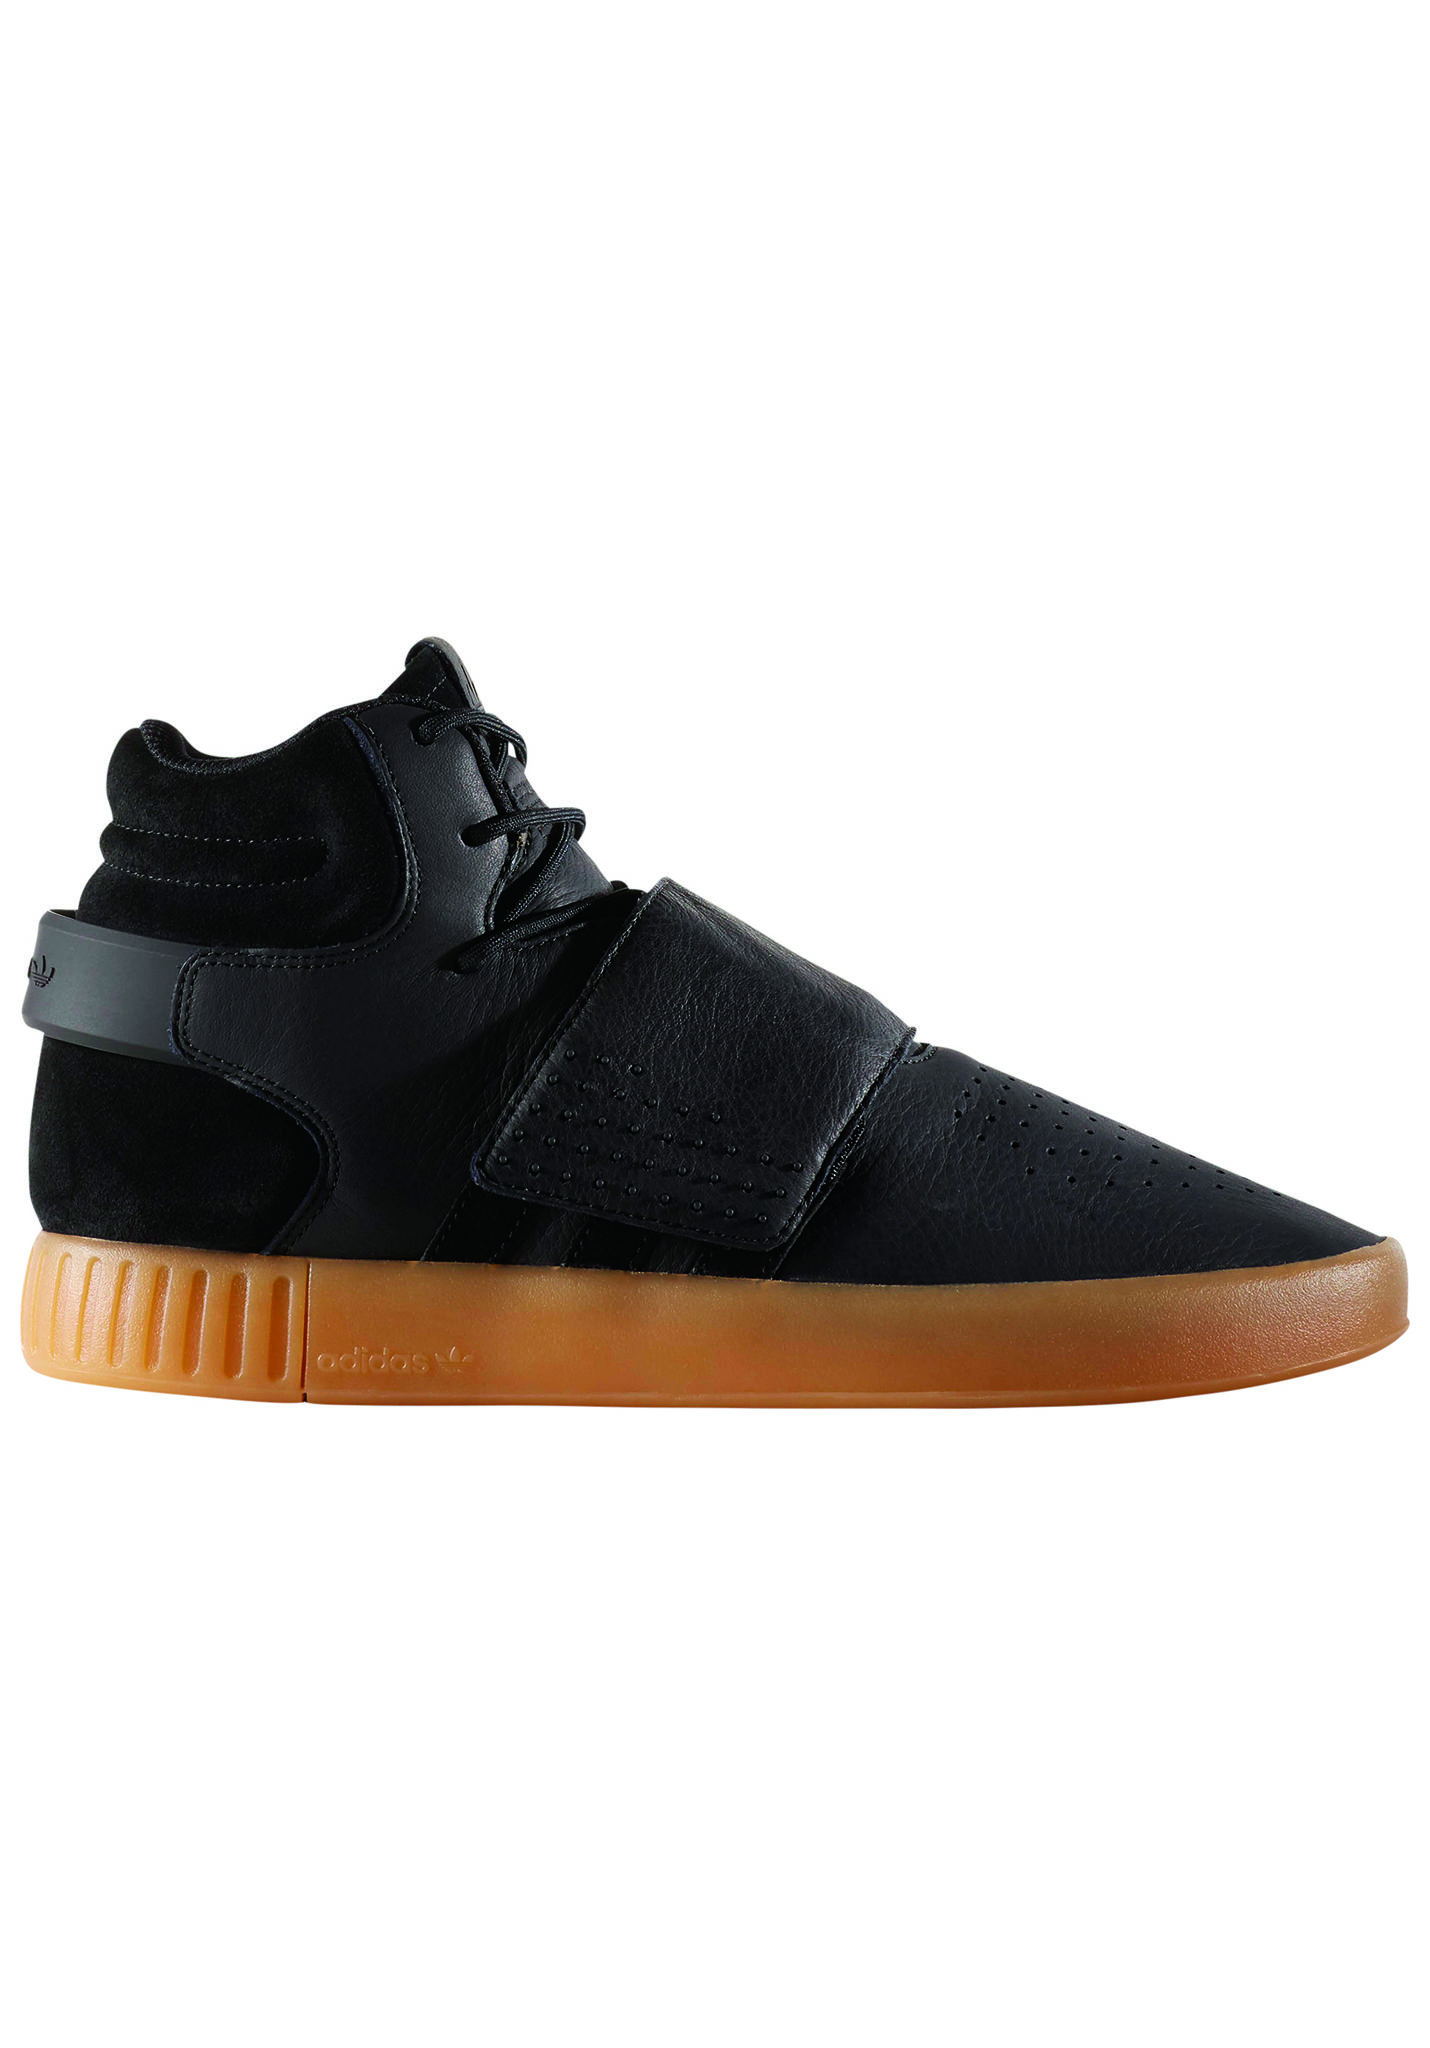 37762cc0dc7593 ADIDAS ORIGINALS Tubular Invader Strap - Sneakers for Men - Black - Planet  Sports